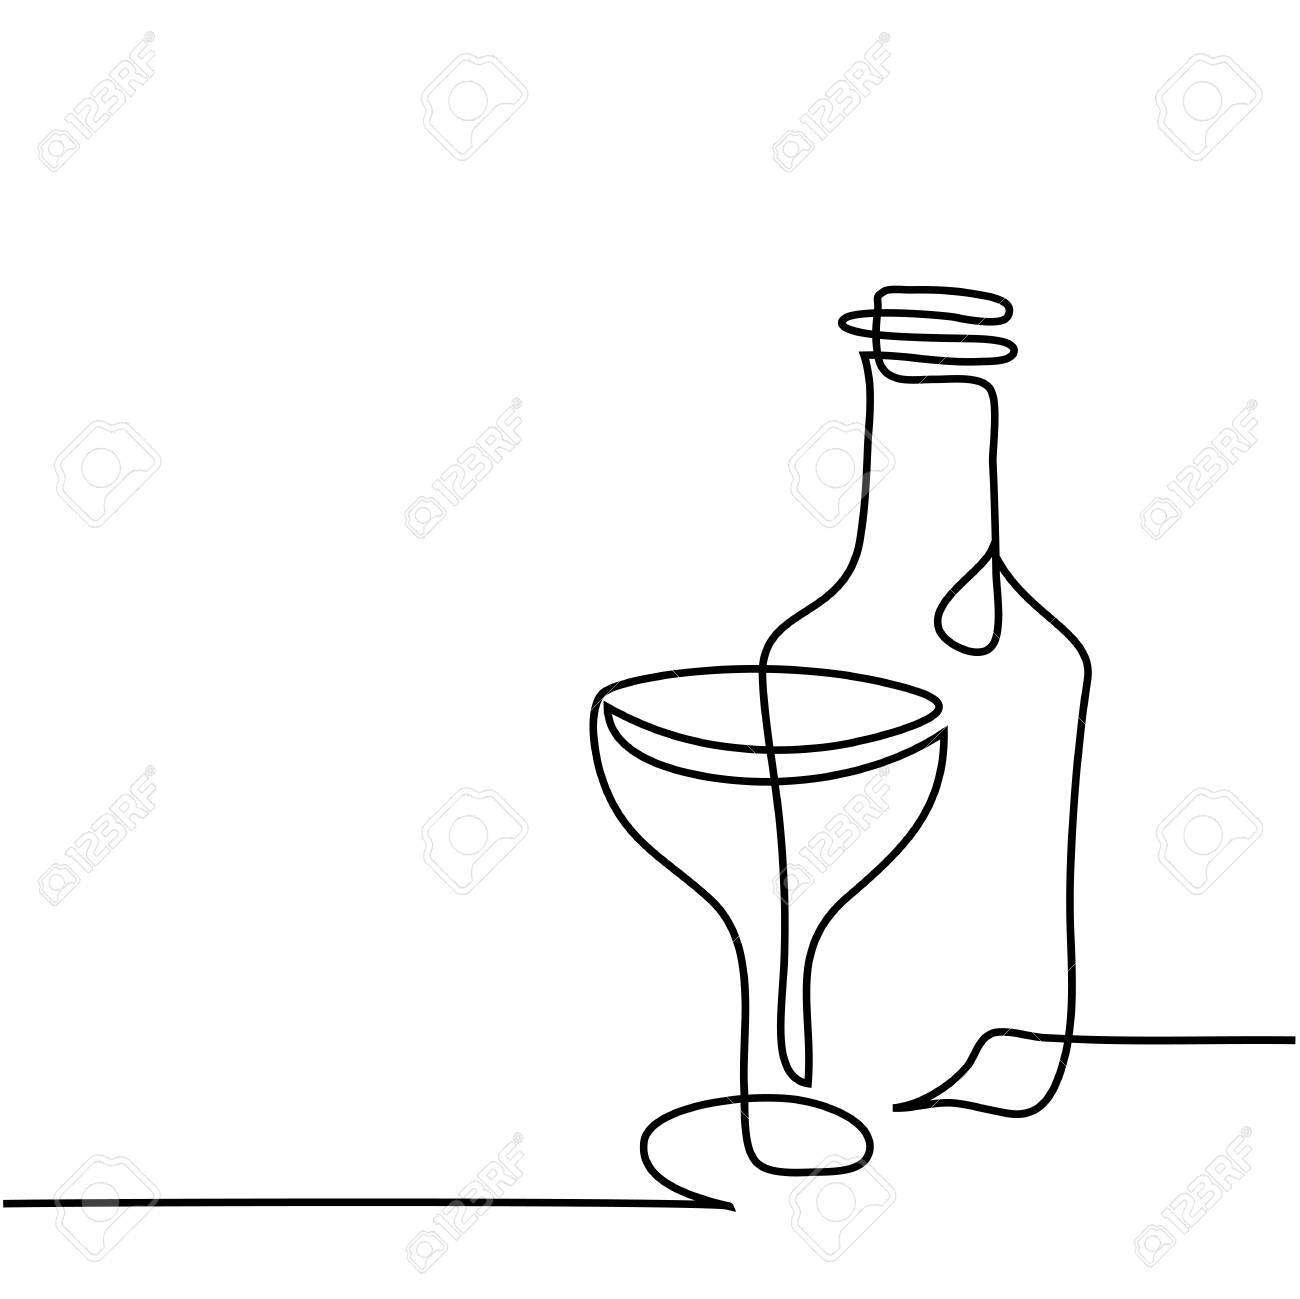 1300x1299 Continuous Line Drawing. Wine Bottle And Glass Contour. Black